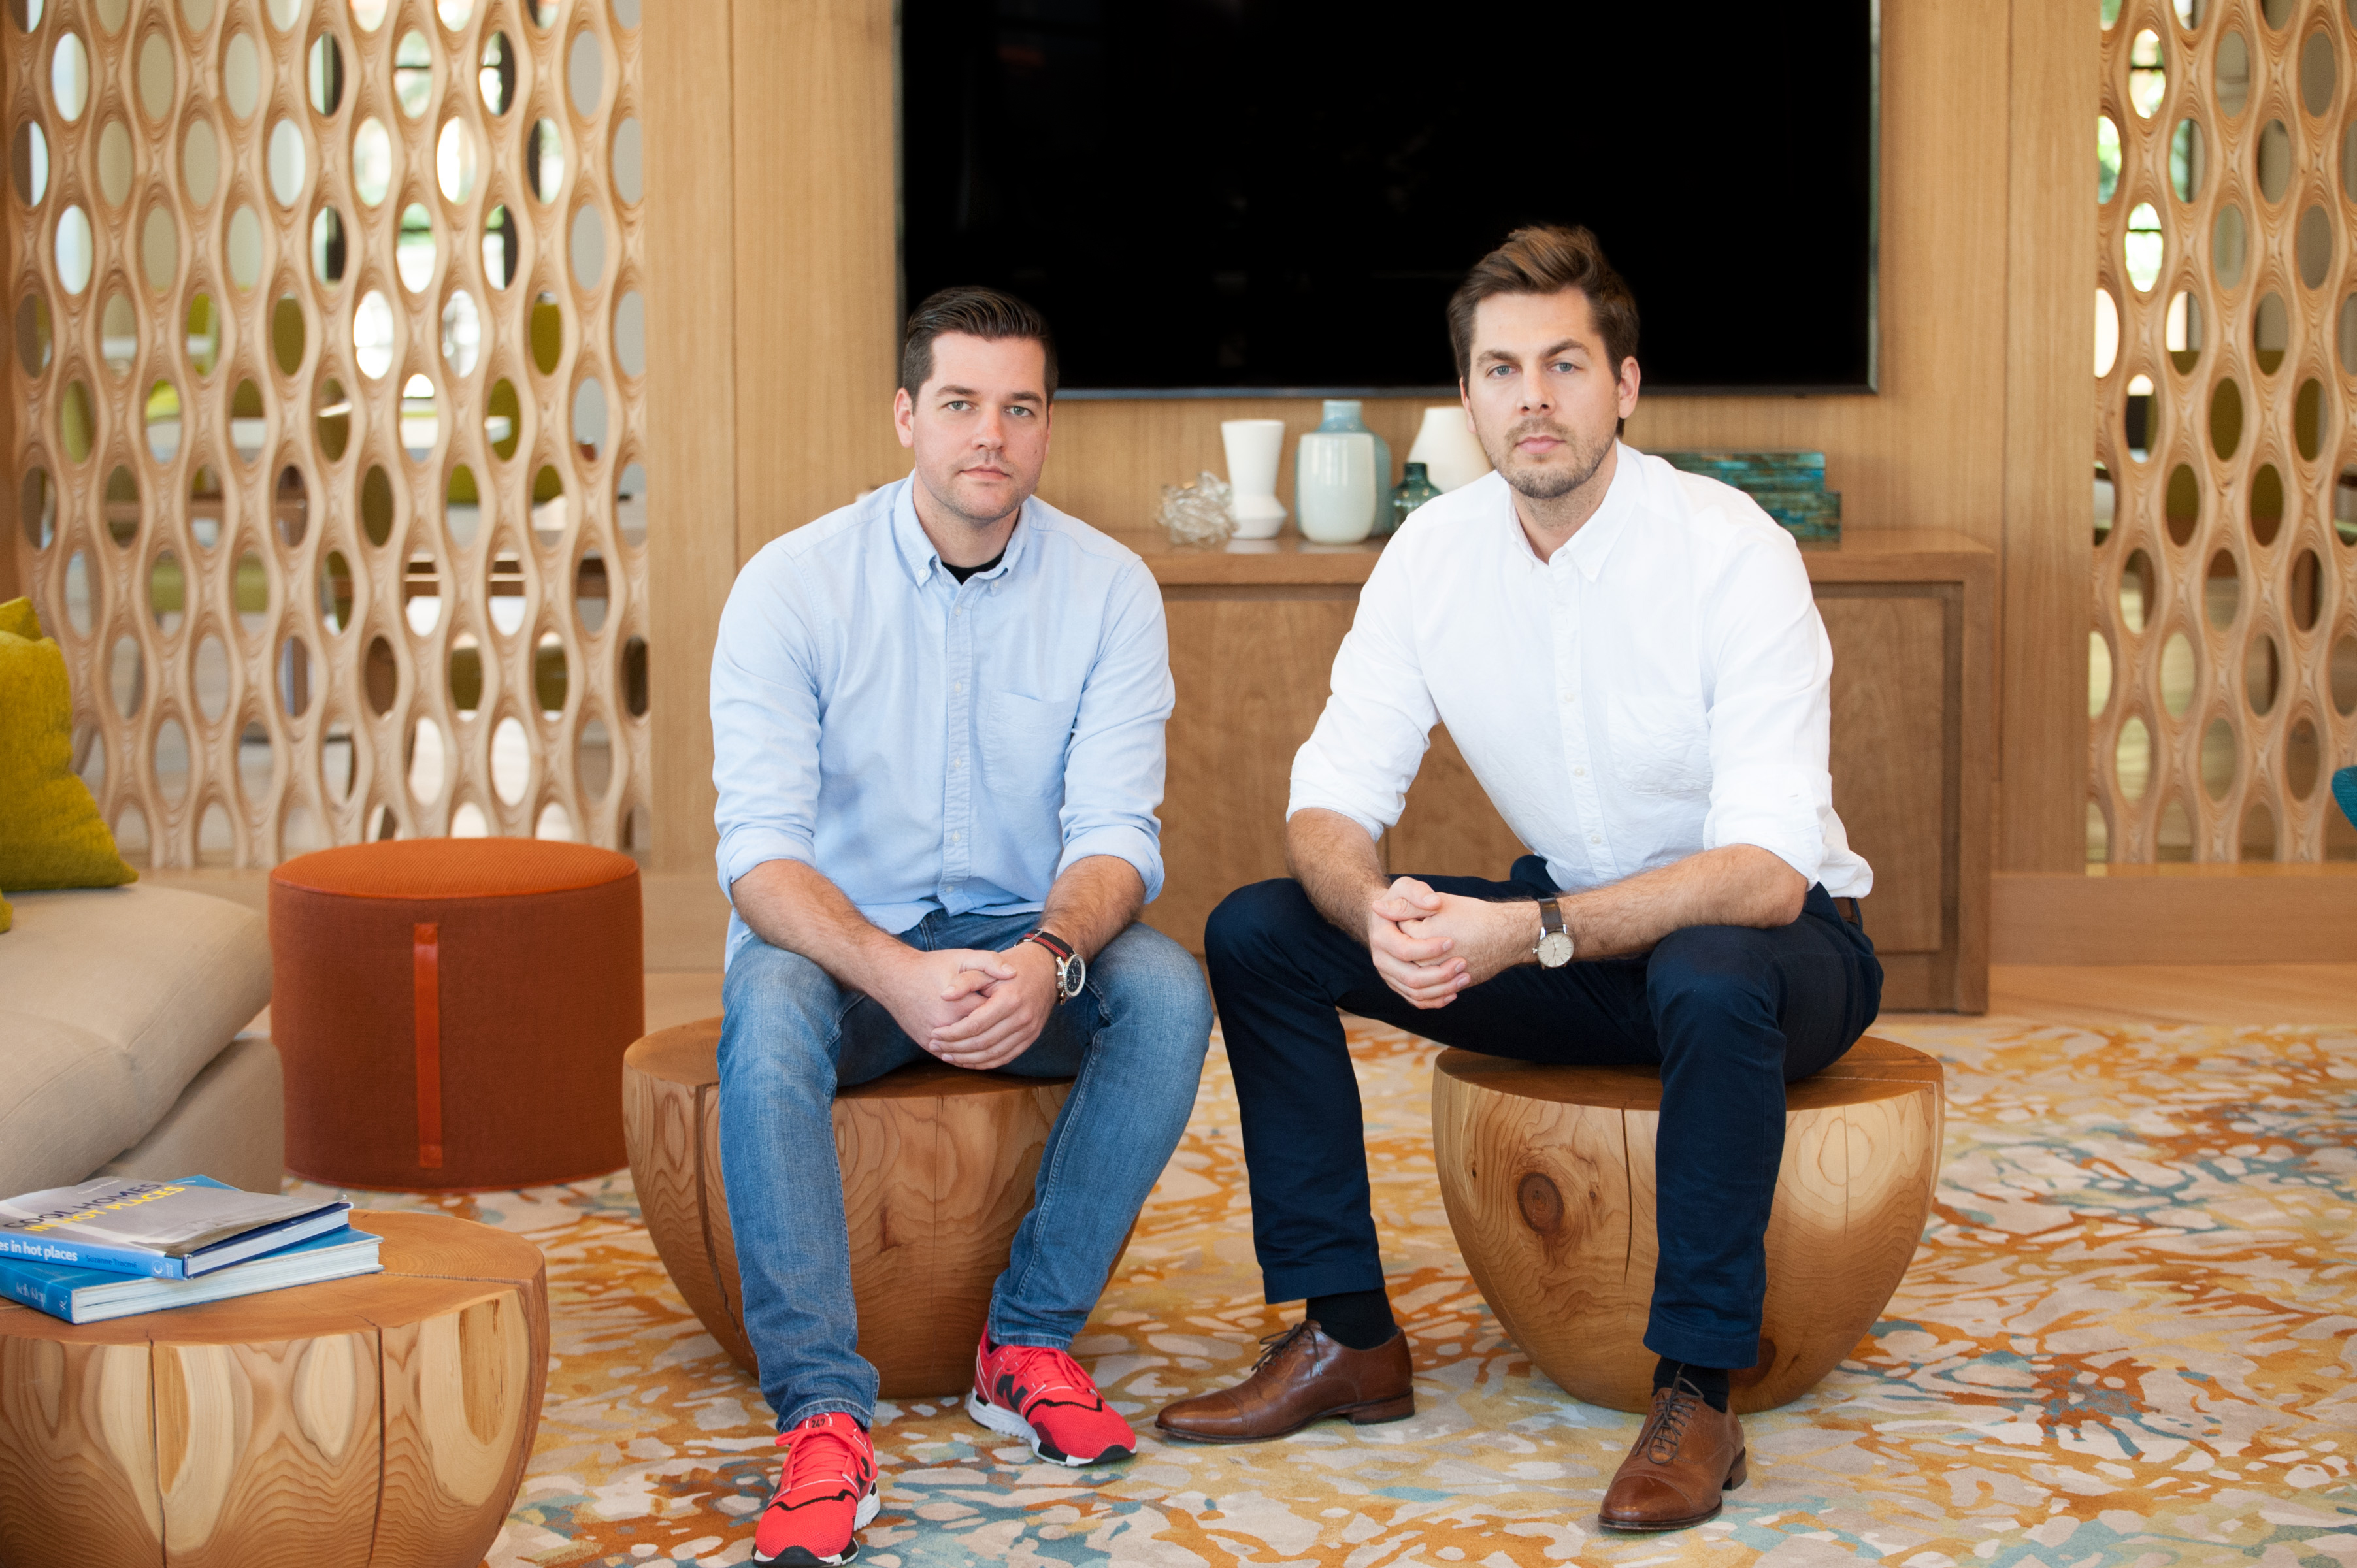 Templarbit's cofounders: Bjoern Zinssmeister (l), CEO, and Matthias Kadenbach (r), chief technology officer